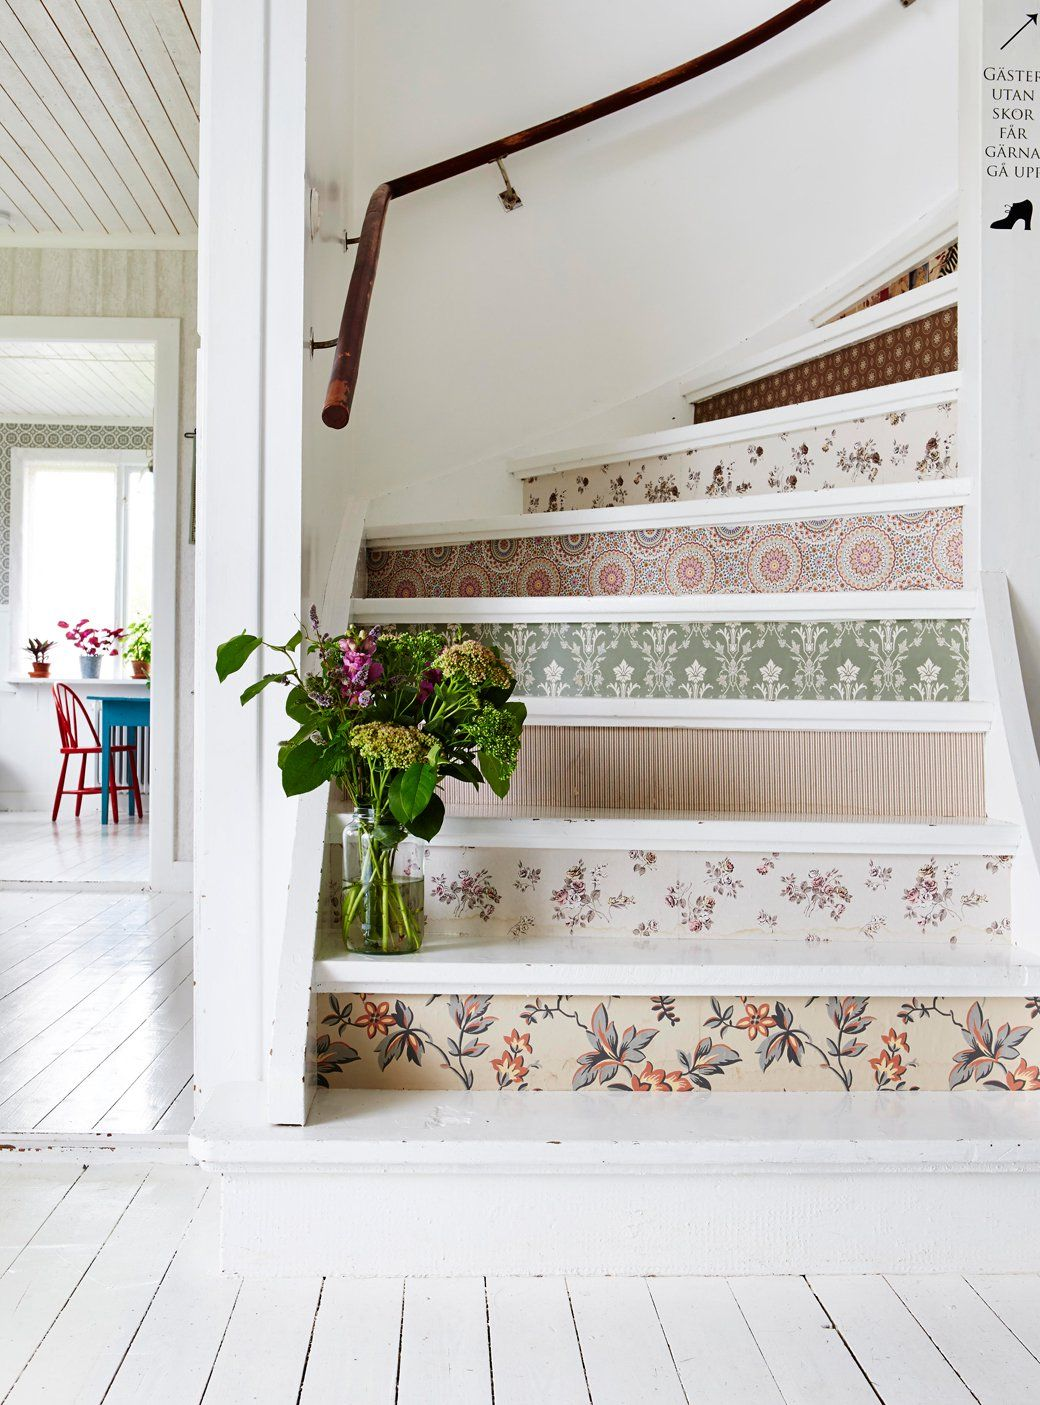 Diy Wallpaper Your Stairs Decor8 Wallpaper Stairs Diy Wallpaper Painted Staircases